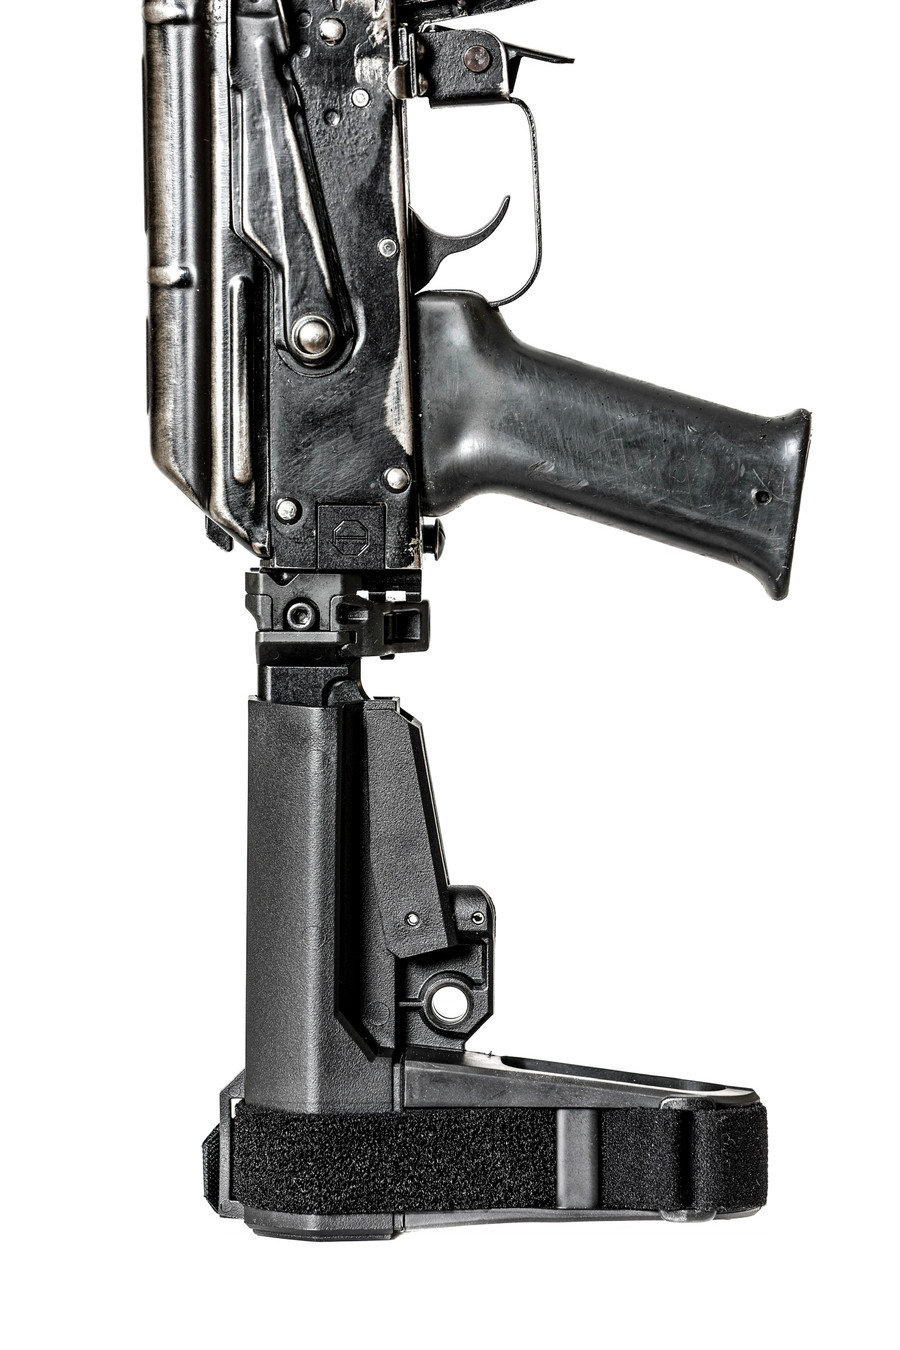 ST-6 with 1913 Folding Mech (SIG)